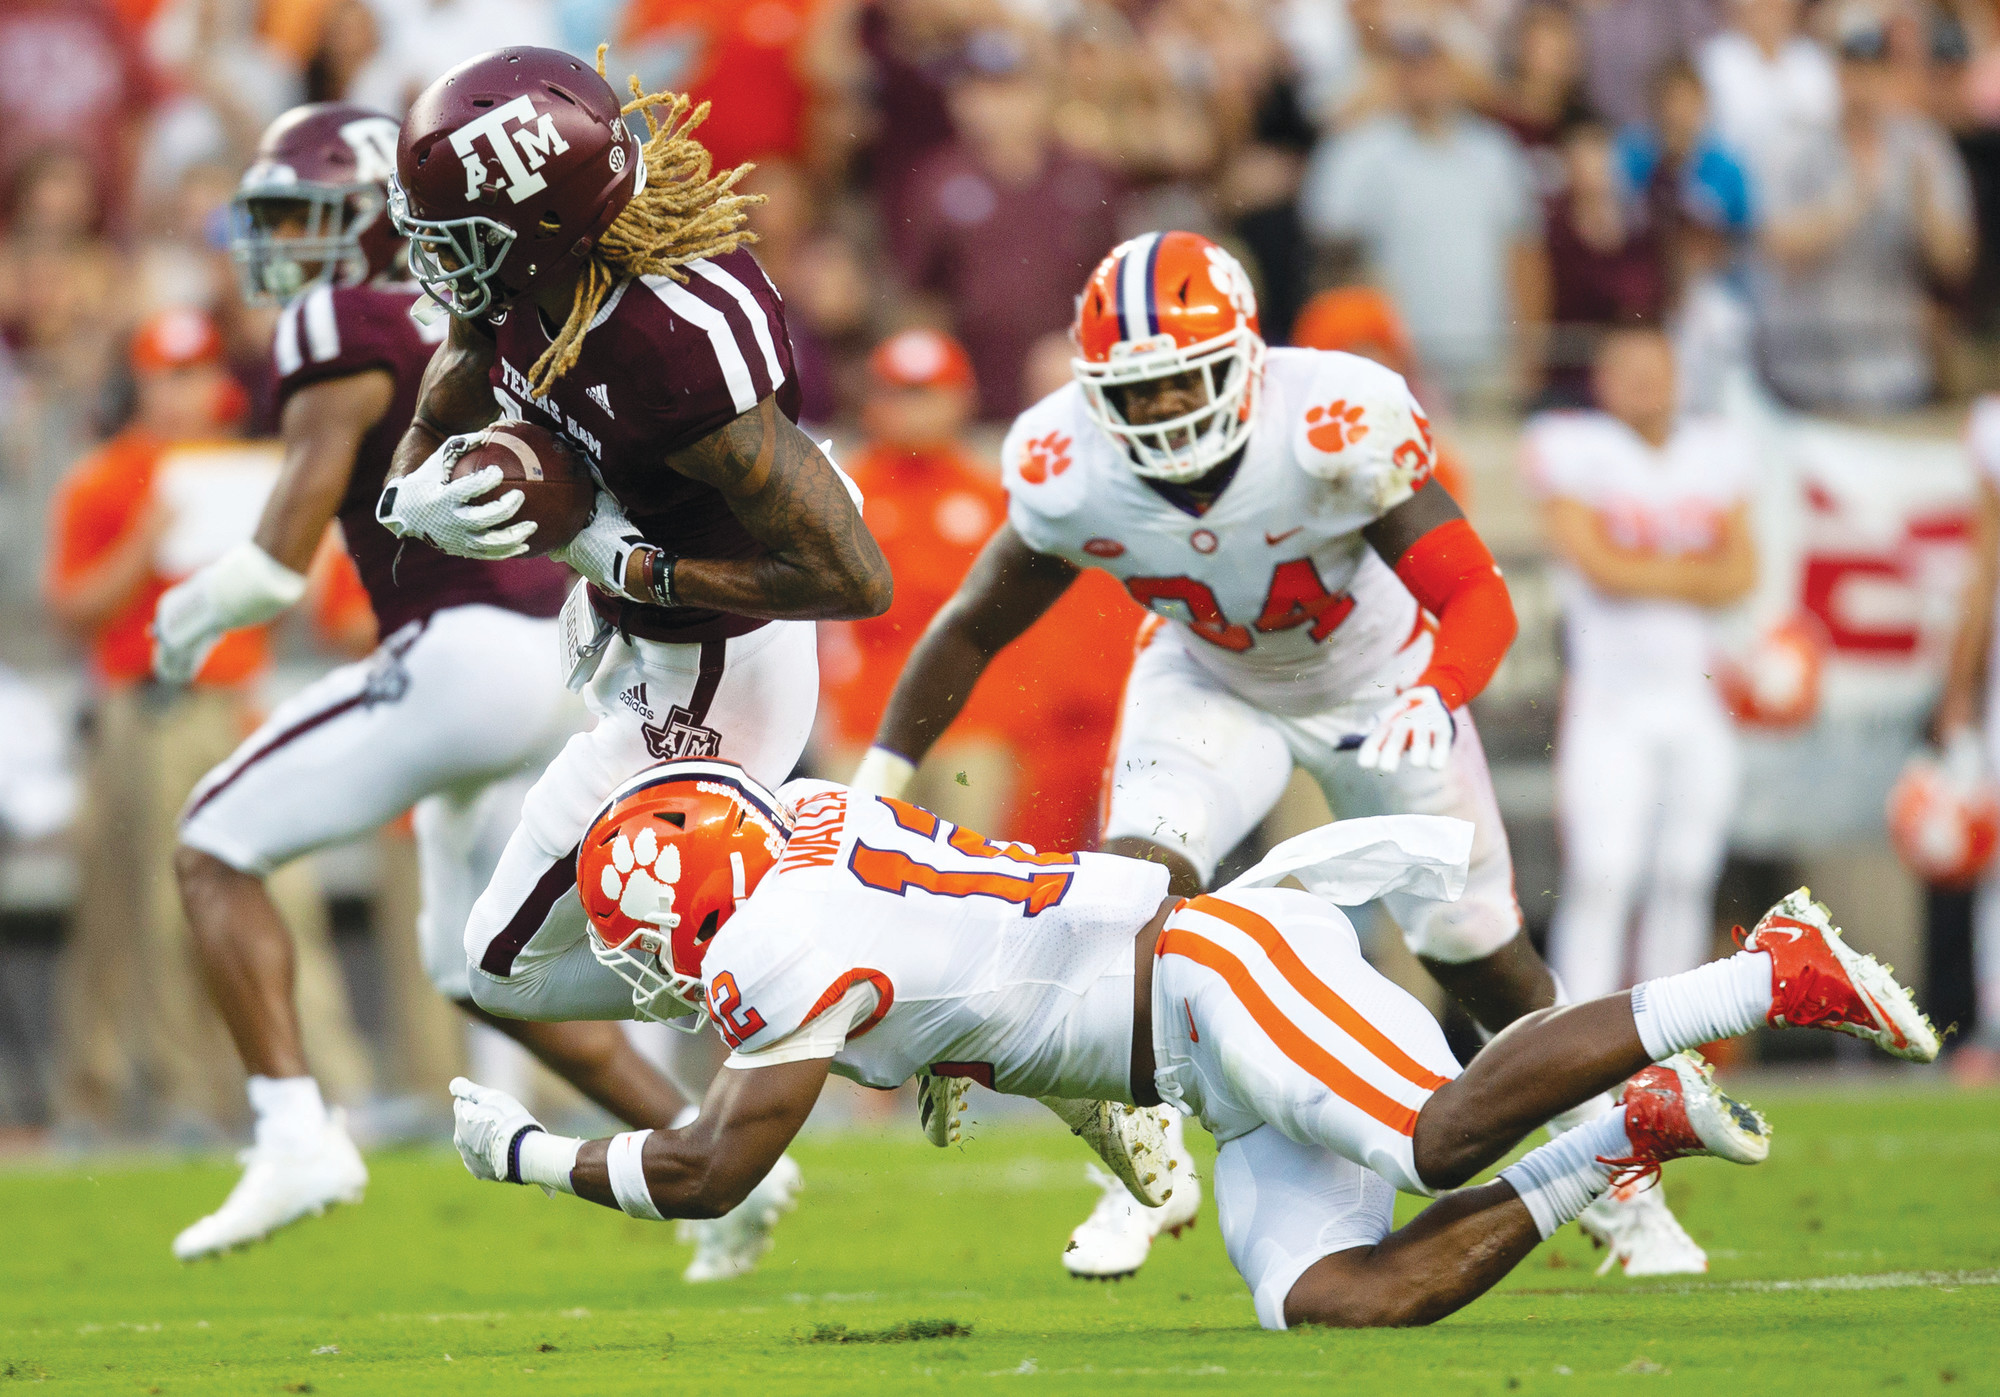 THE ASSOCIATED PRESSTexas A&M wide receiver Kendrick Rogers (13) breaks a tackle by Clemson defensive  back K'Von Wallace (12) in the Tigers' 28-26 win on Saturday in College Station, Texas. The Tigers have questions to answer about their dominant defense, which gave up 501 yards and three second-half touchdowns.